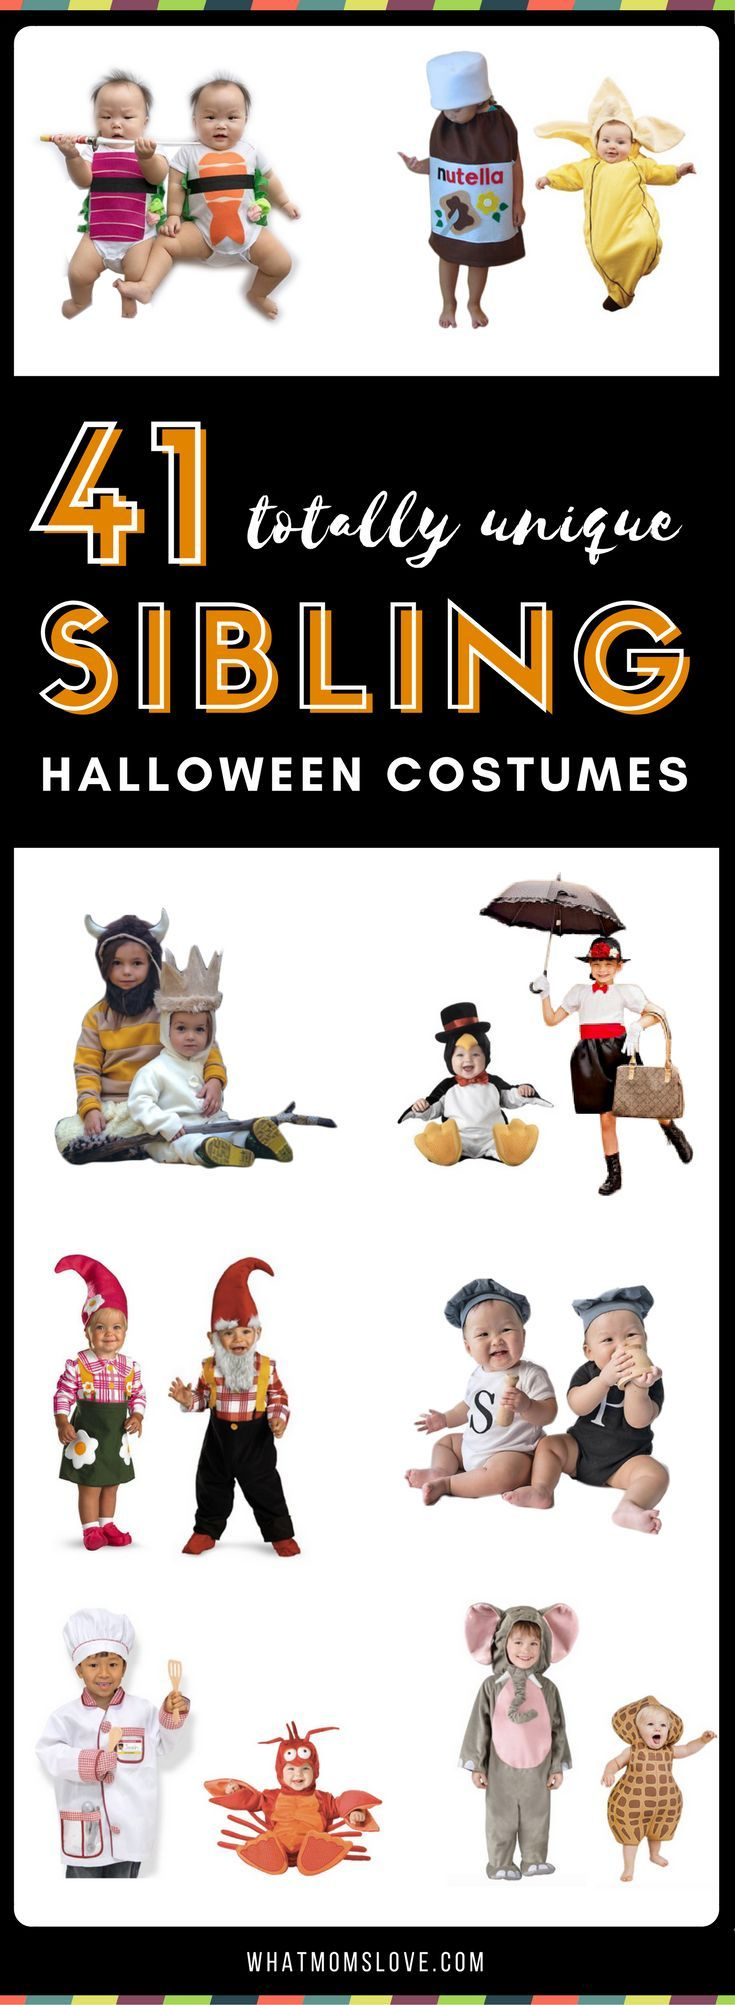 Sibling Costume Ideas for Halloween | Creative costumes for kids - perfect for families looking to coordinate their sisters, brothers, boys and girls | Unique group ideas for 2, 3 and more kids! No DIY required!